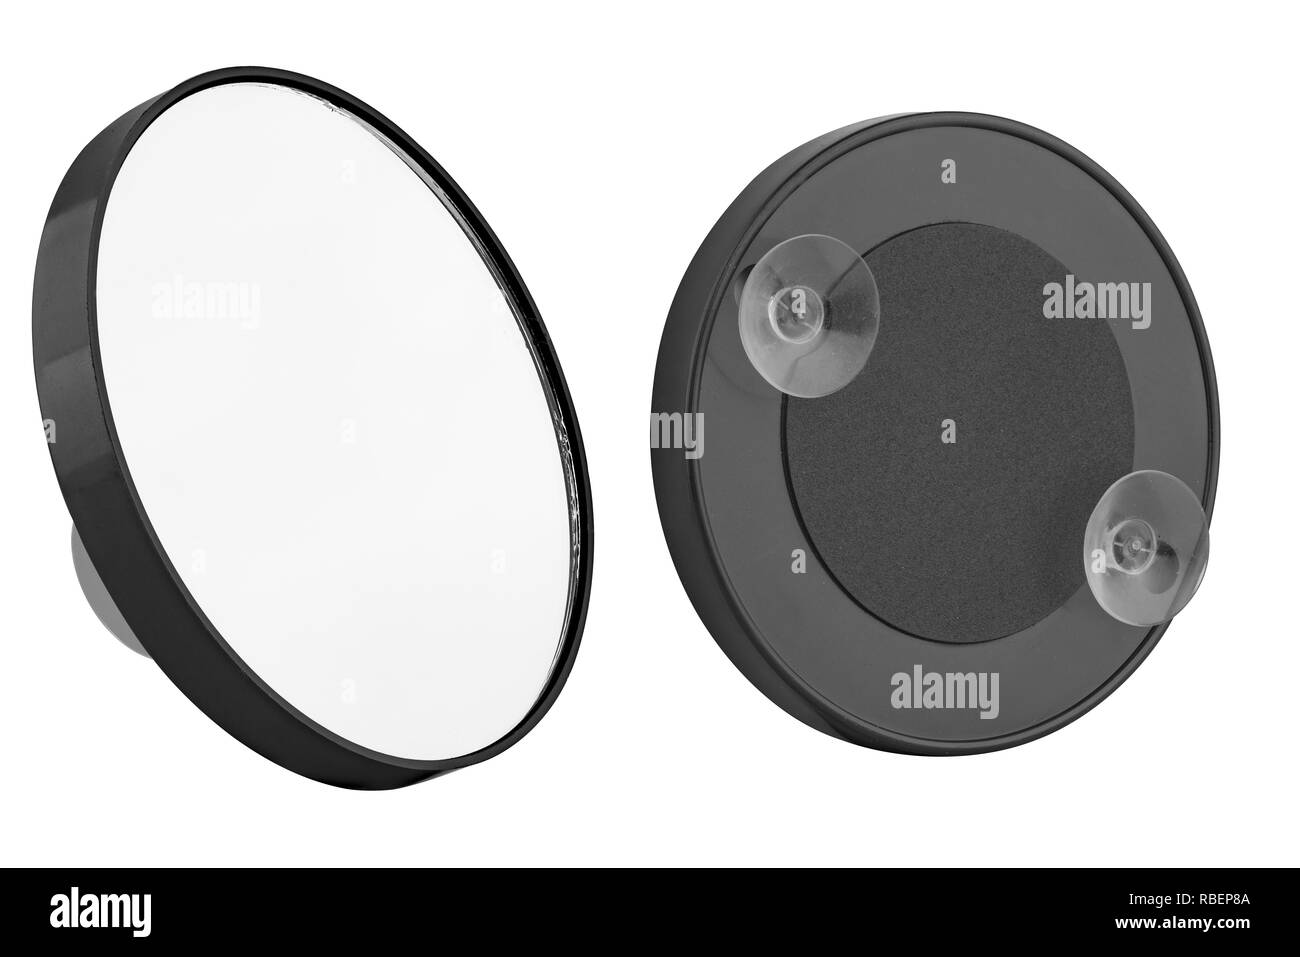 Black plastic round pocket mirror for make-up, with two suction cups on the back, beauty product isolated on white background - Stock Image